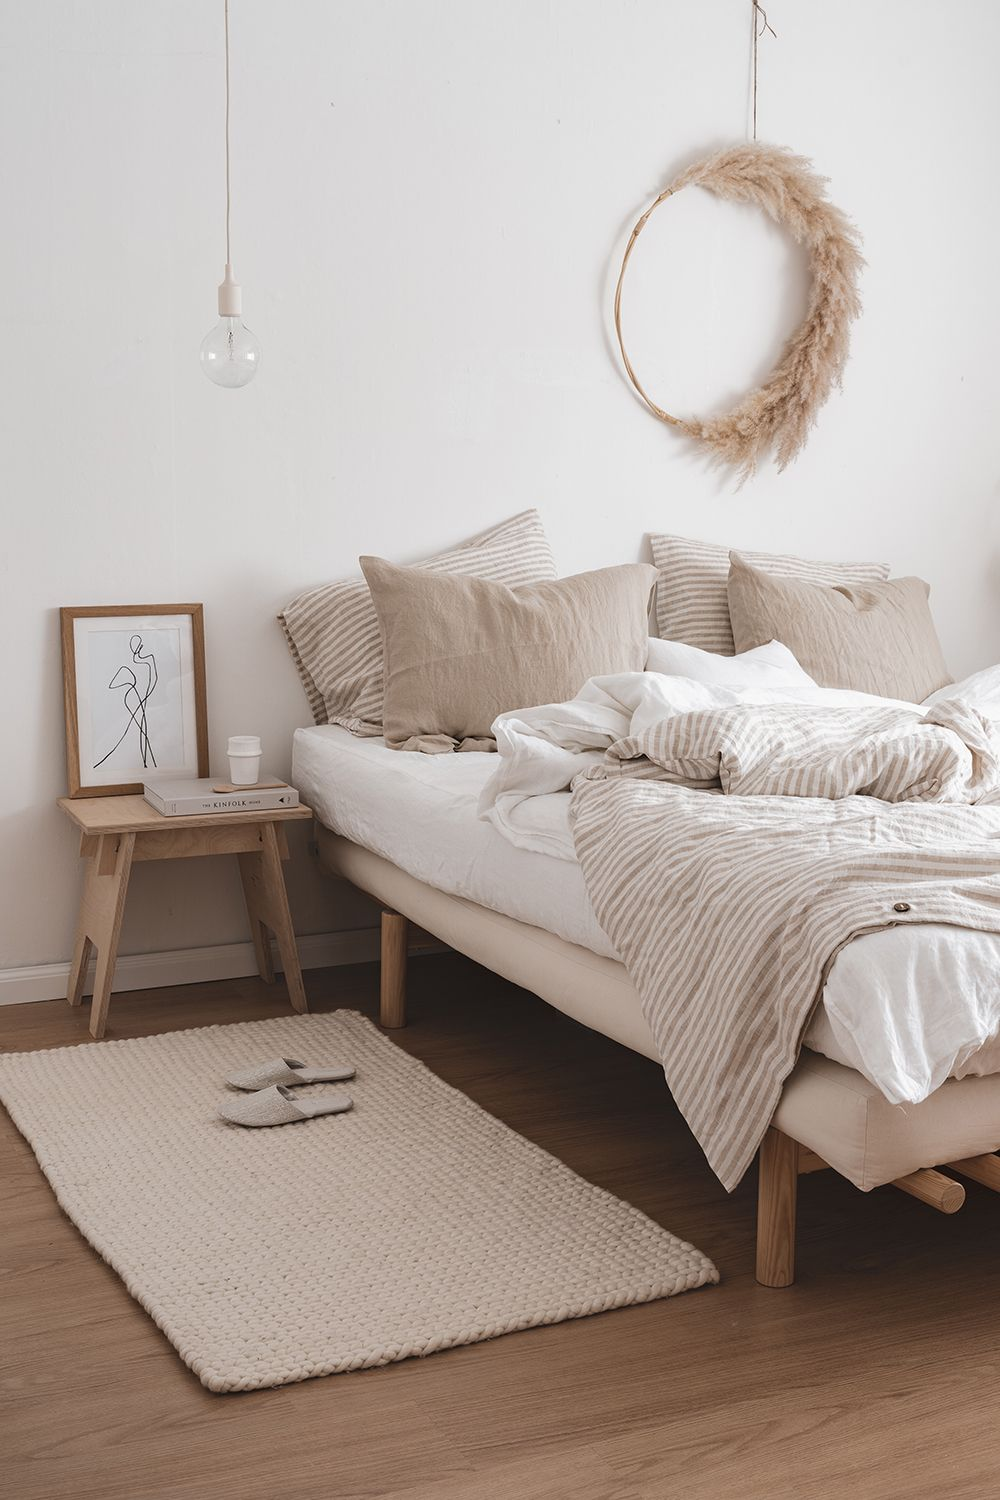 Linen With Its Soft Texture And Airy Feel Is The Epitome Of Calm Featuring Linen Bedding In Natural Bedroom Inspirations Home Decor Bedroom Bedroom Design